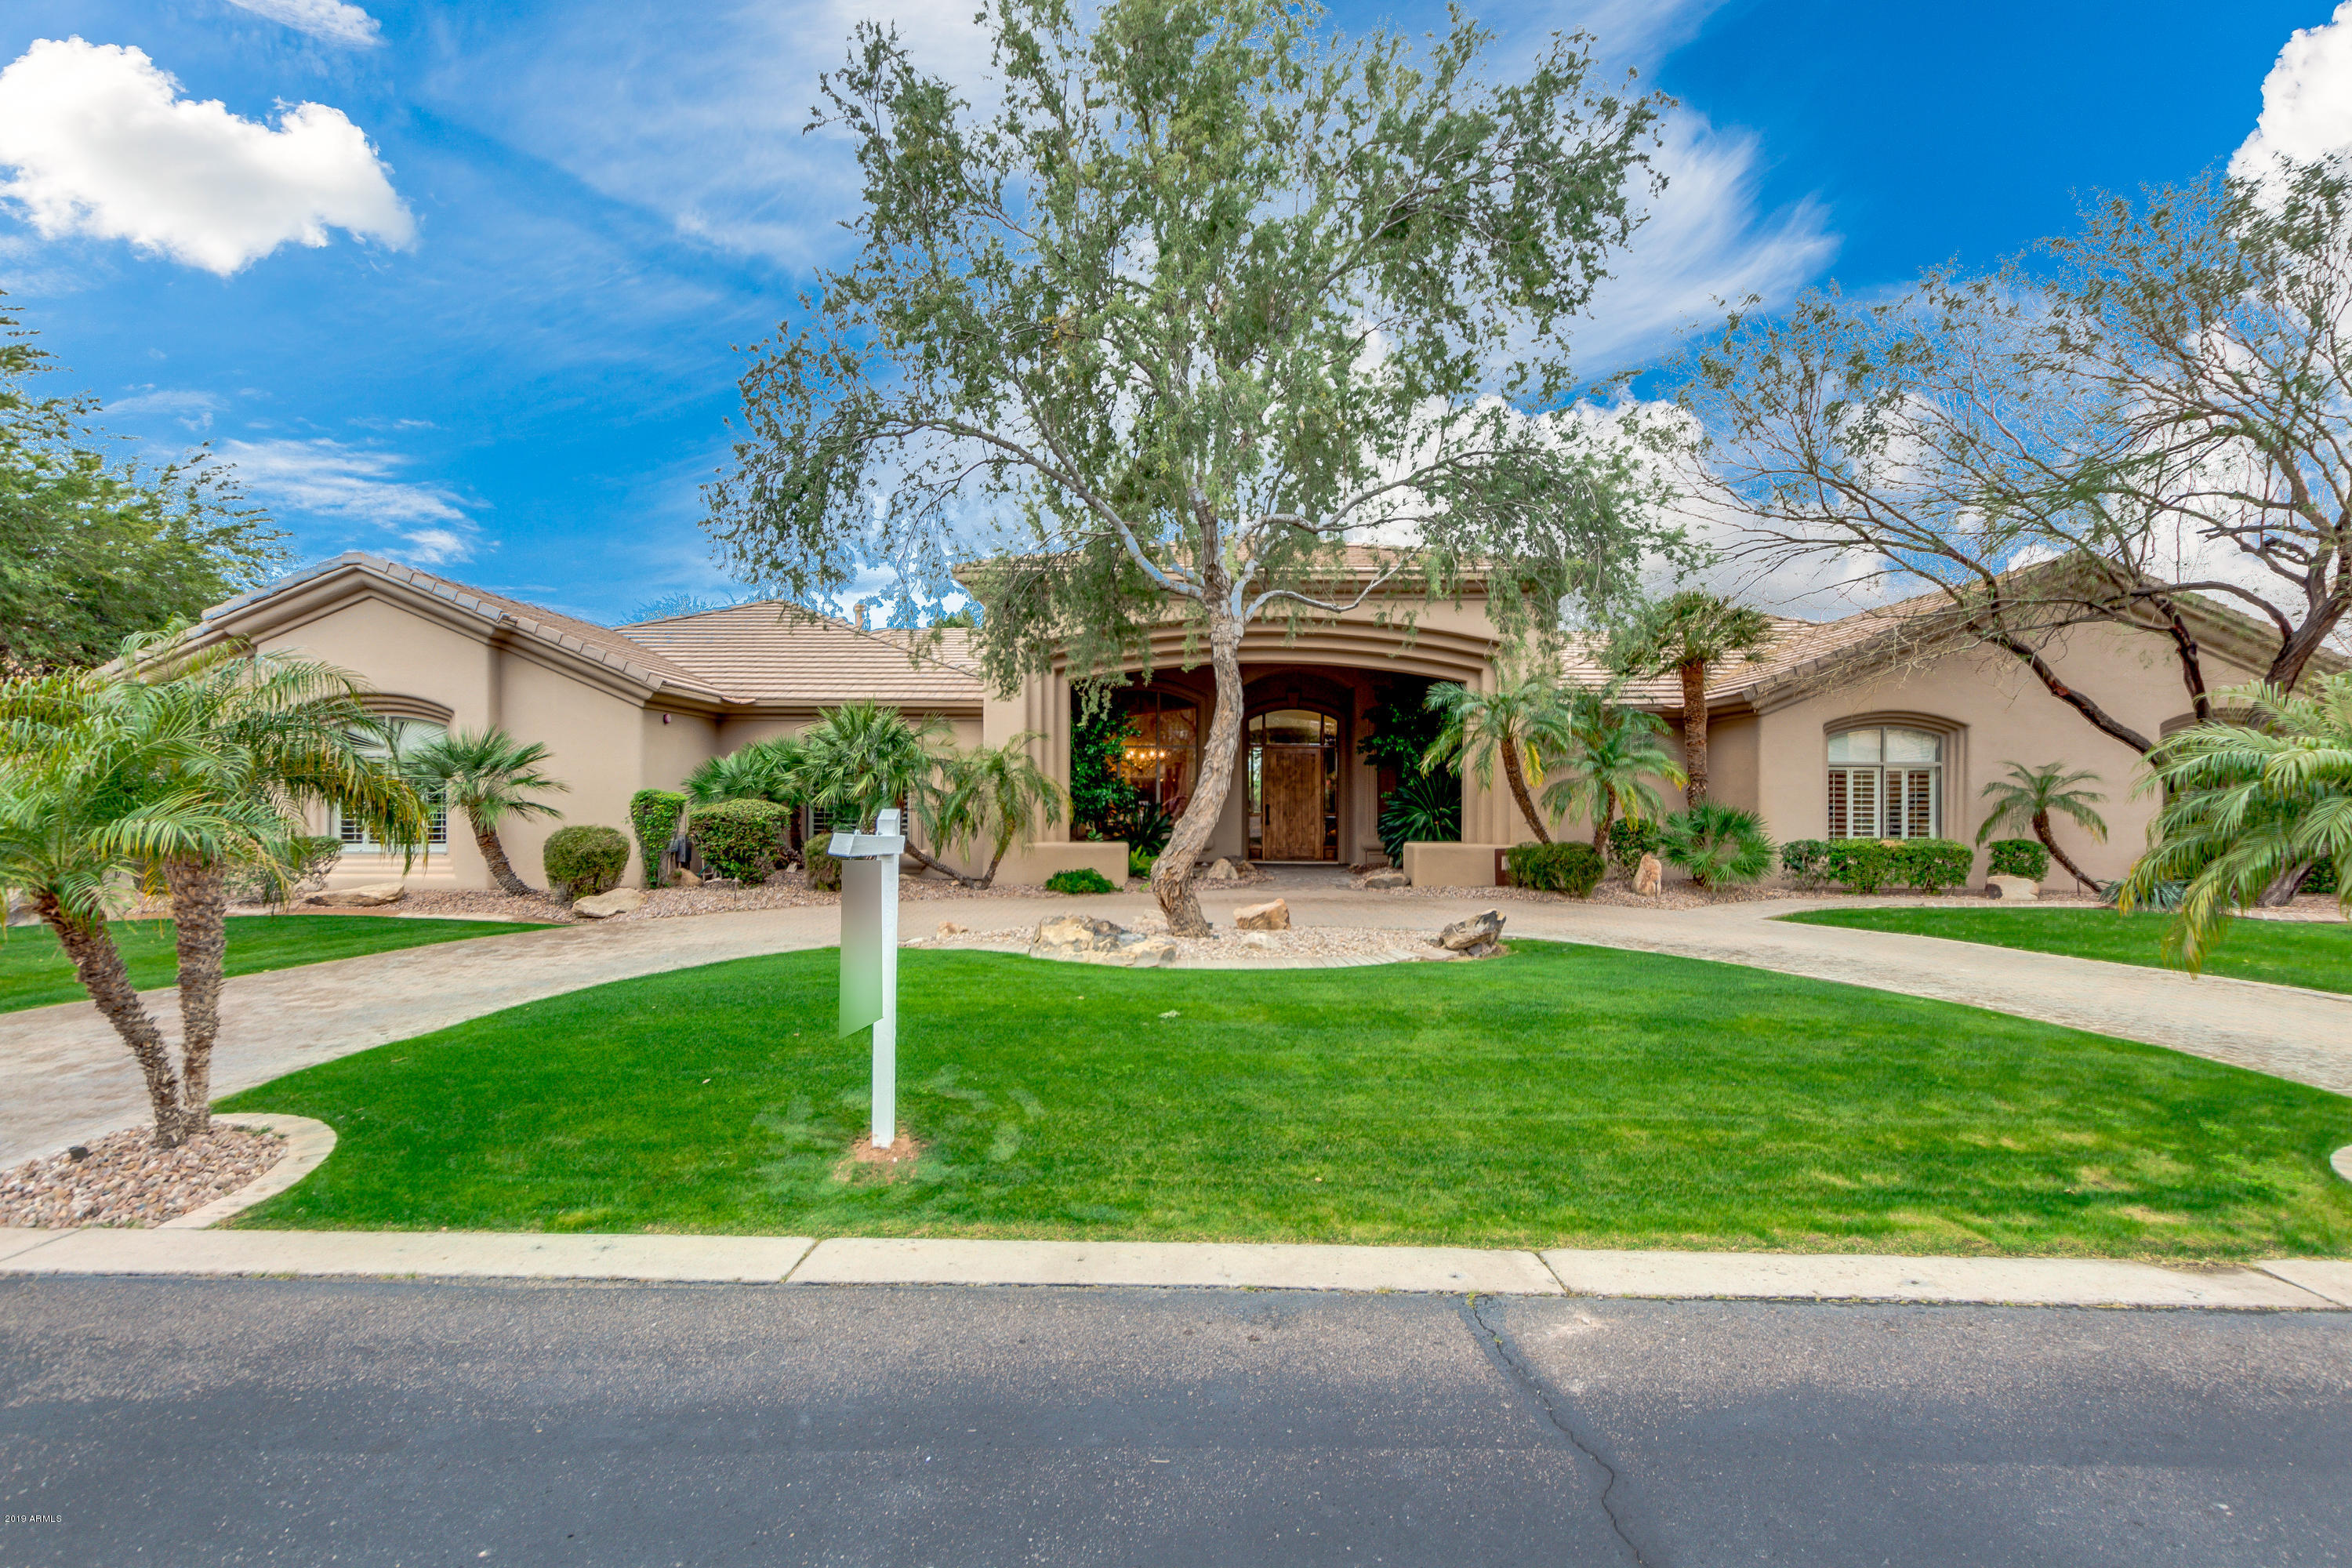 Photo of 9442 N 128TH Way, Scottsdale, AZ 85259